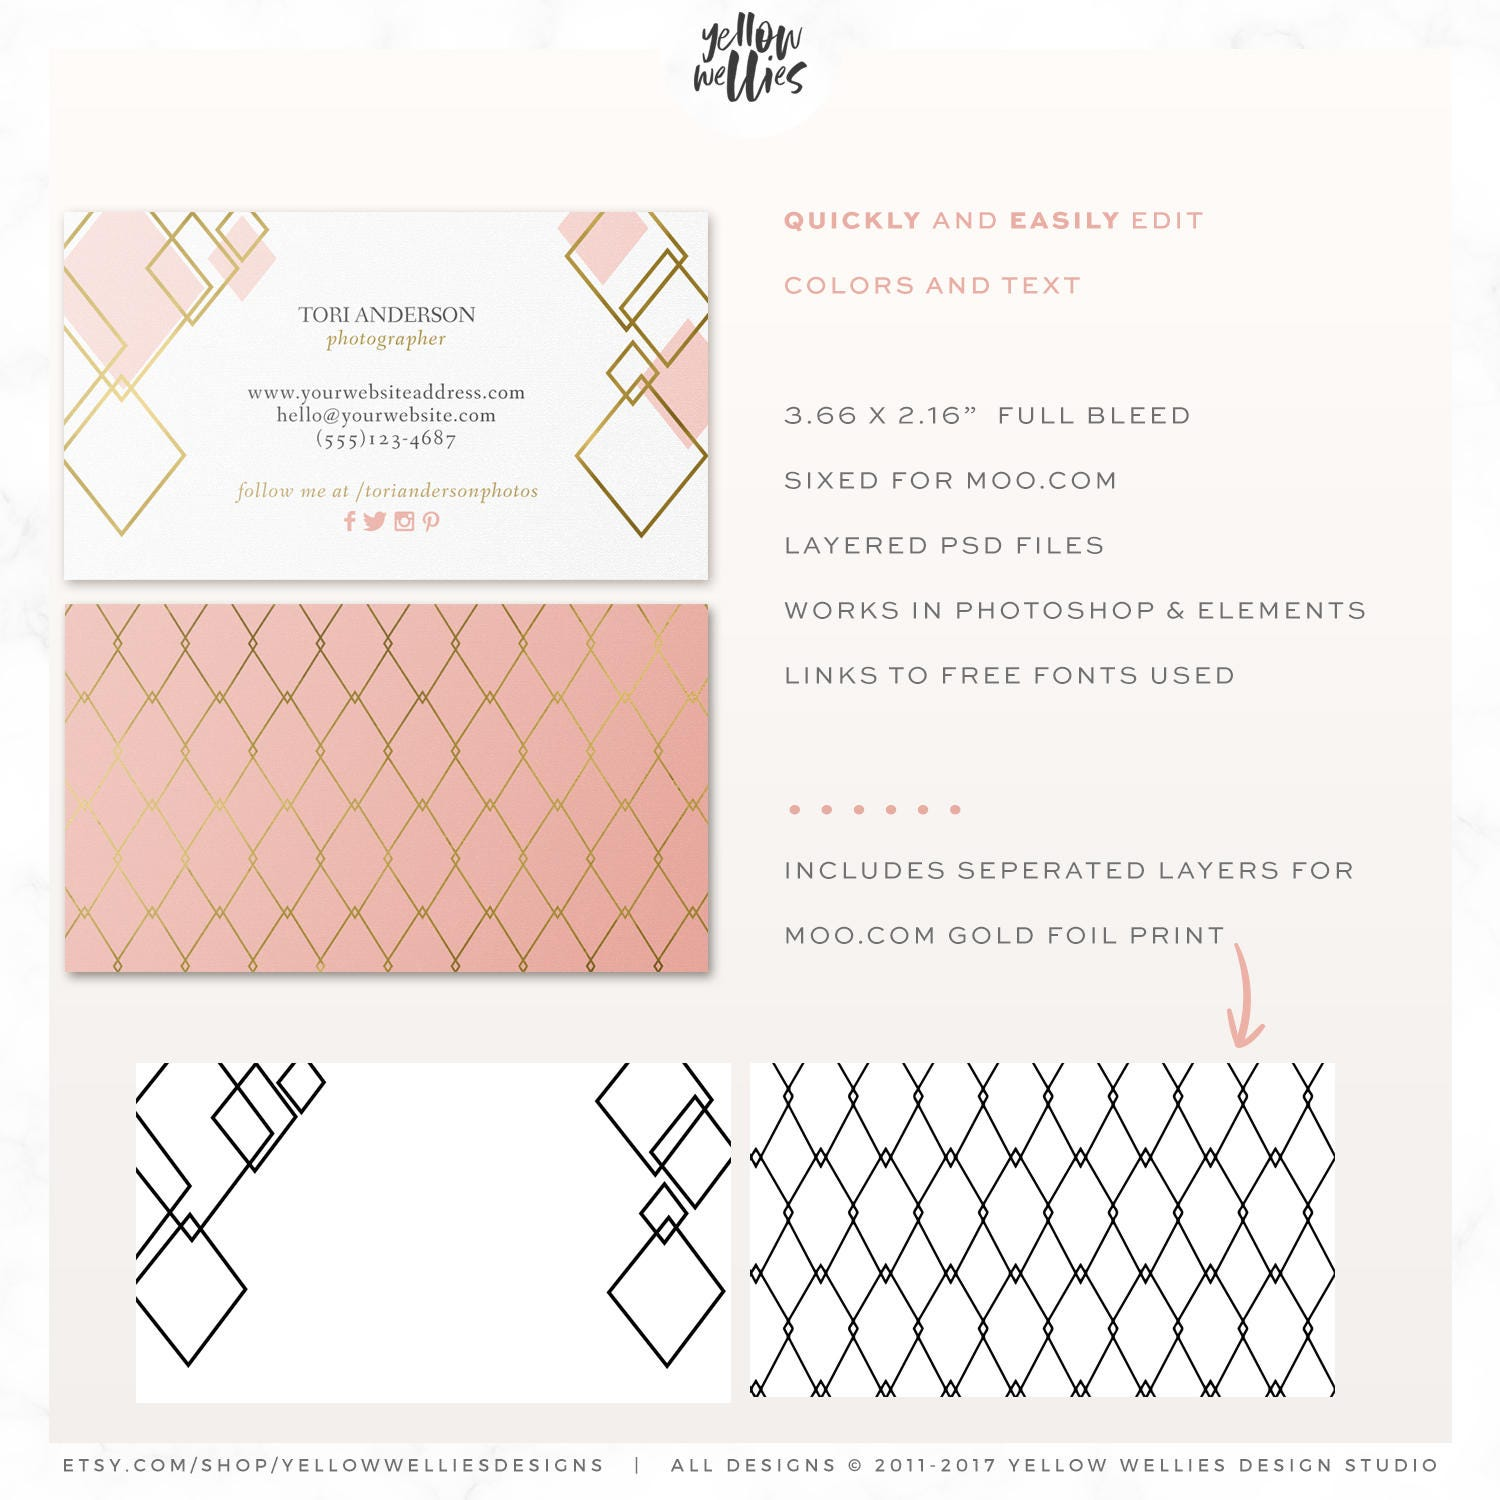 Business card template blush and gold moo template gold foil business card template blush and gold moo template gold foil template photoshop magicingreecefo Images